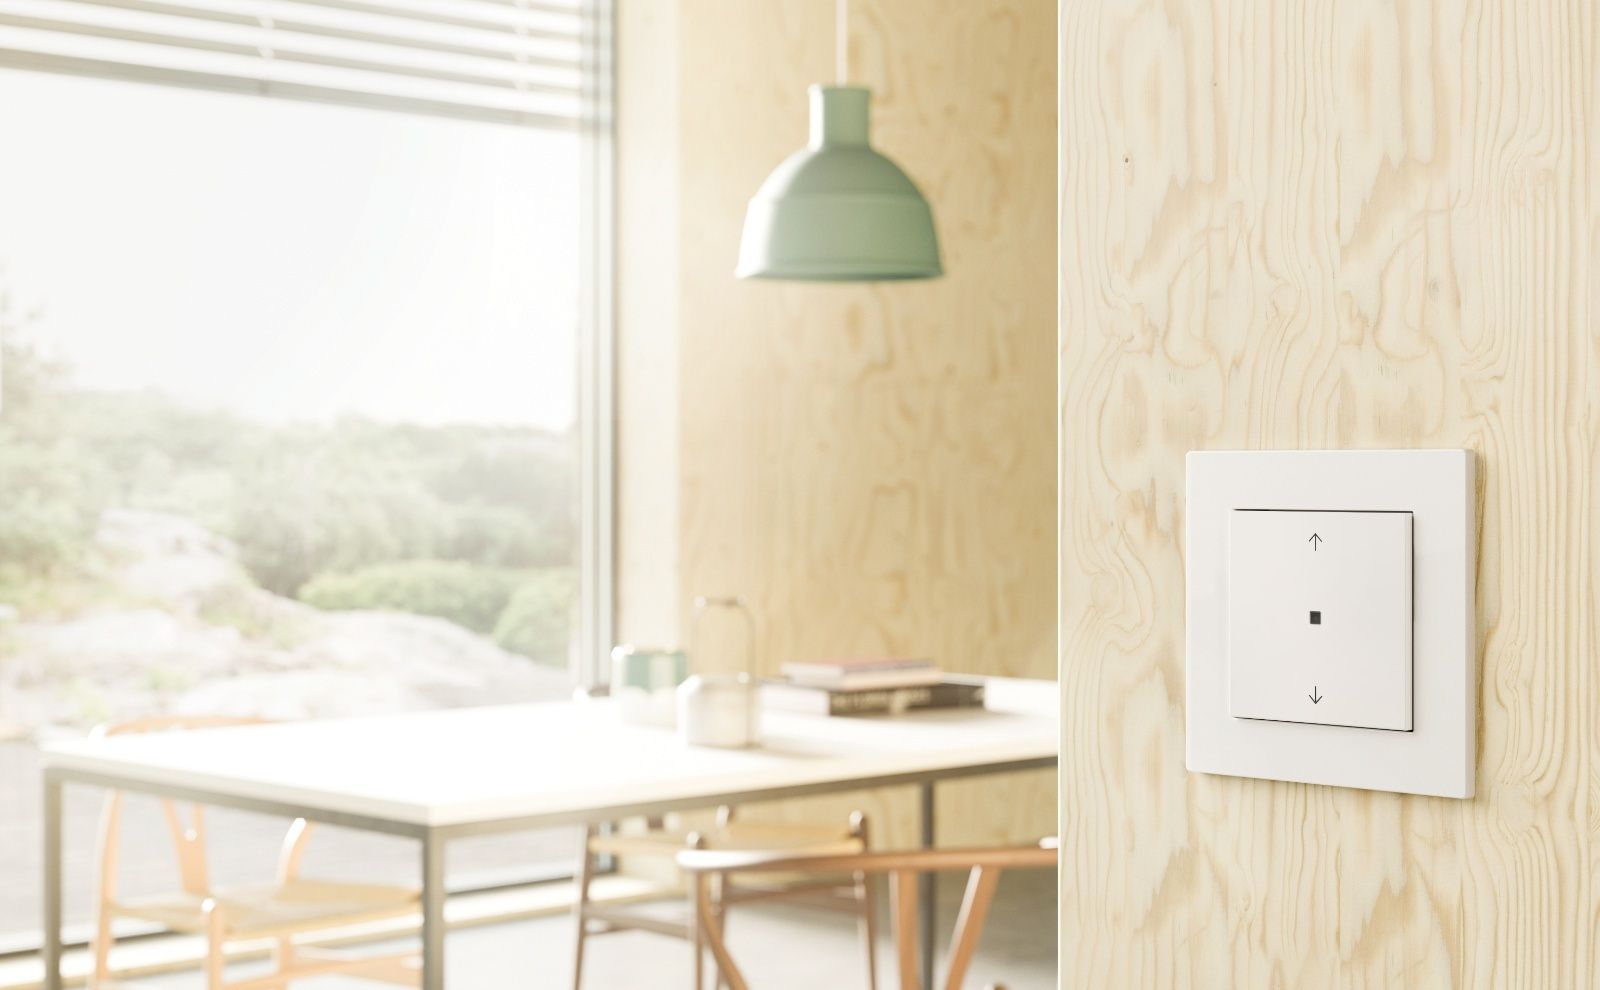 Gira eNet SMART HOME Bedienaufsatz 1fach